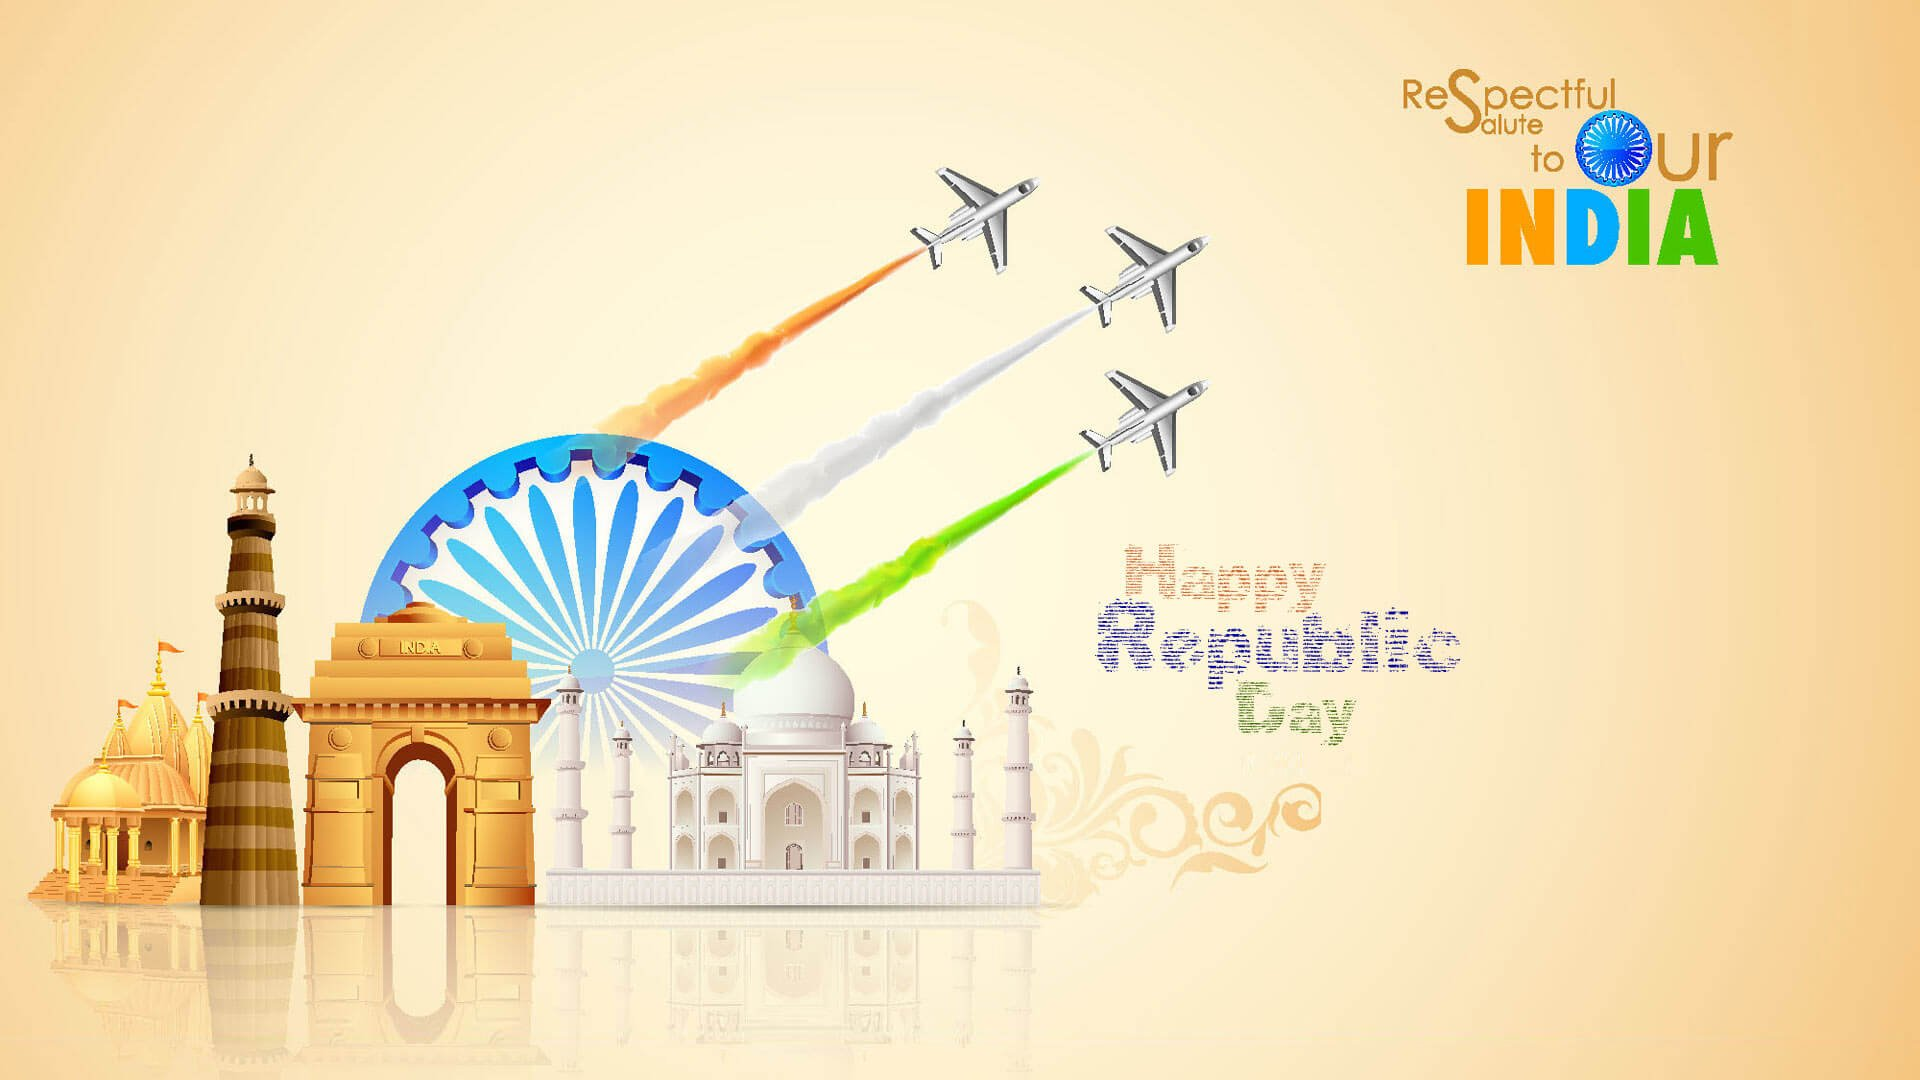 26 Jan Republic Day Images for Drawing